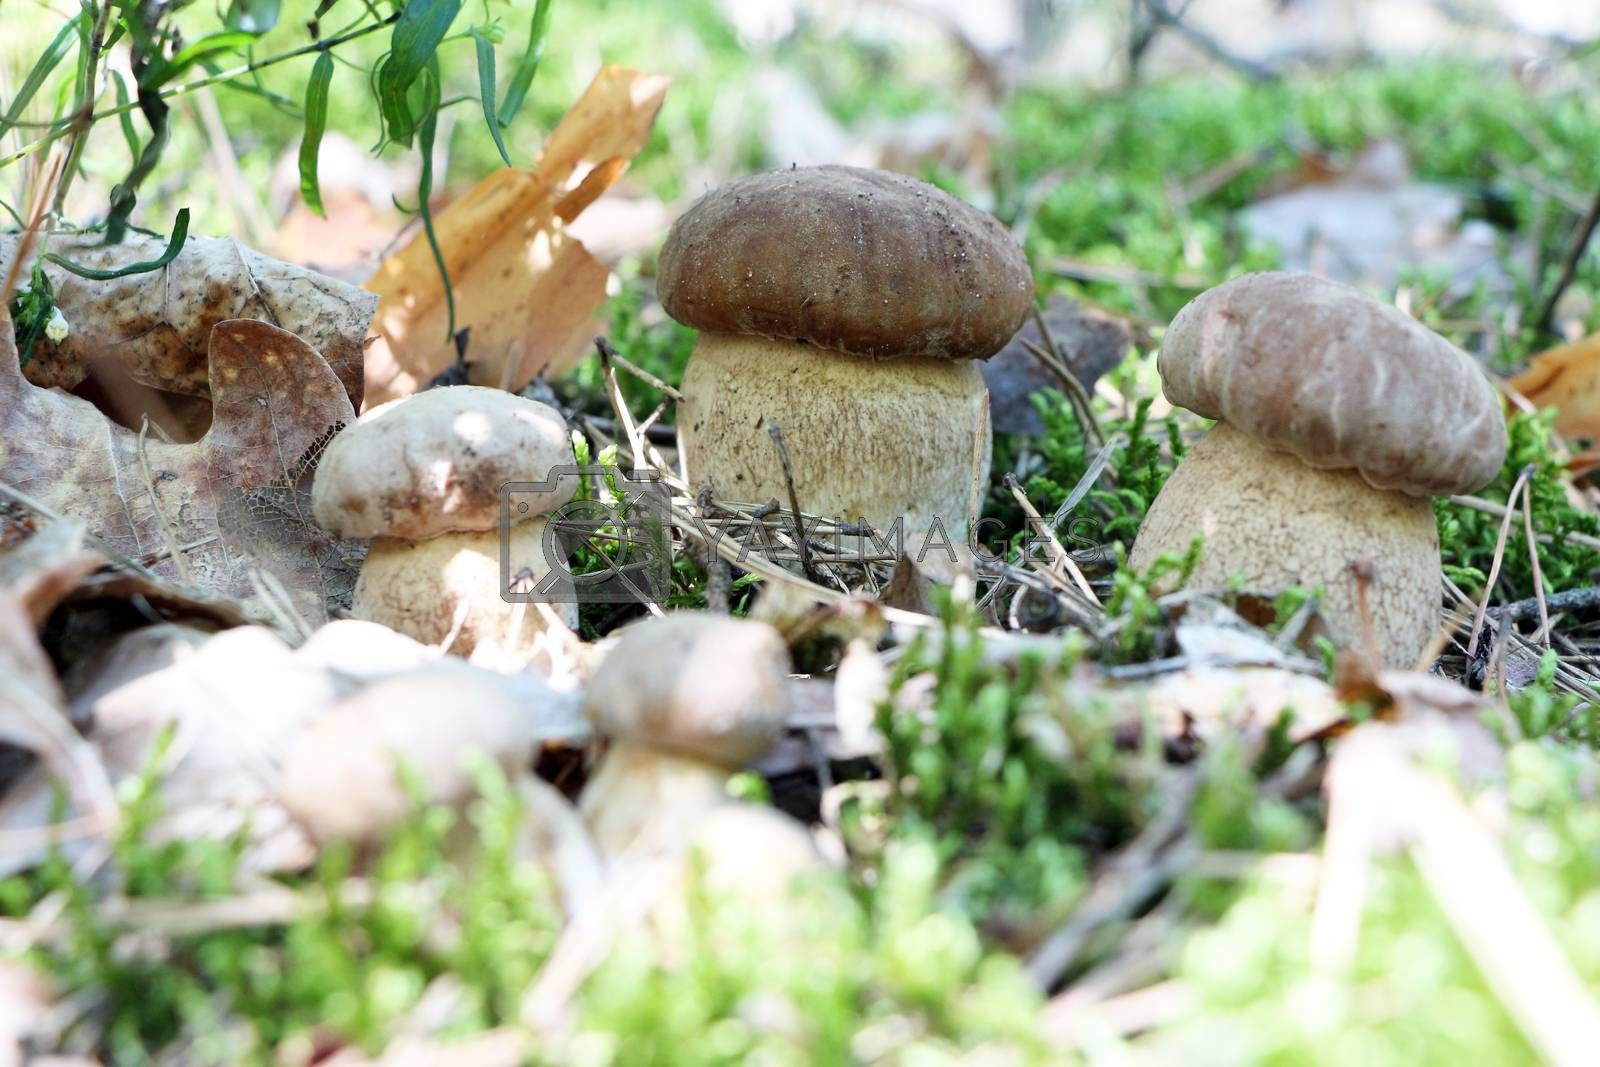 Many little ceps grow in the deciduous forest, close-up photo